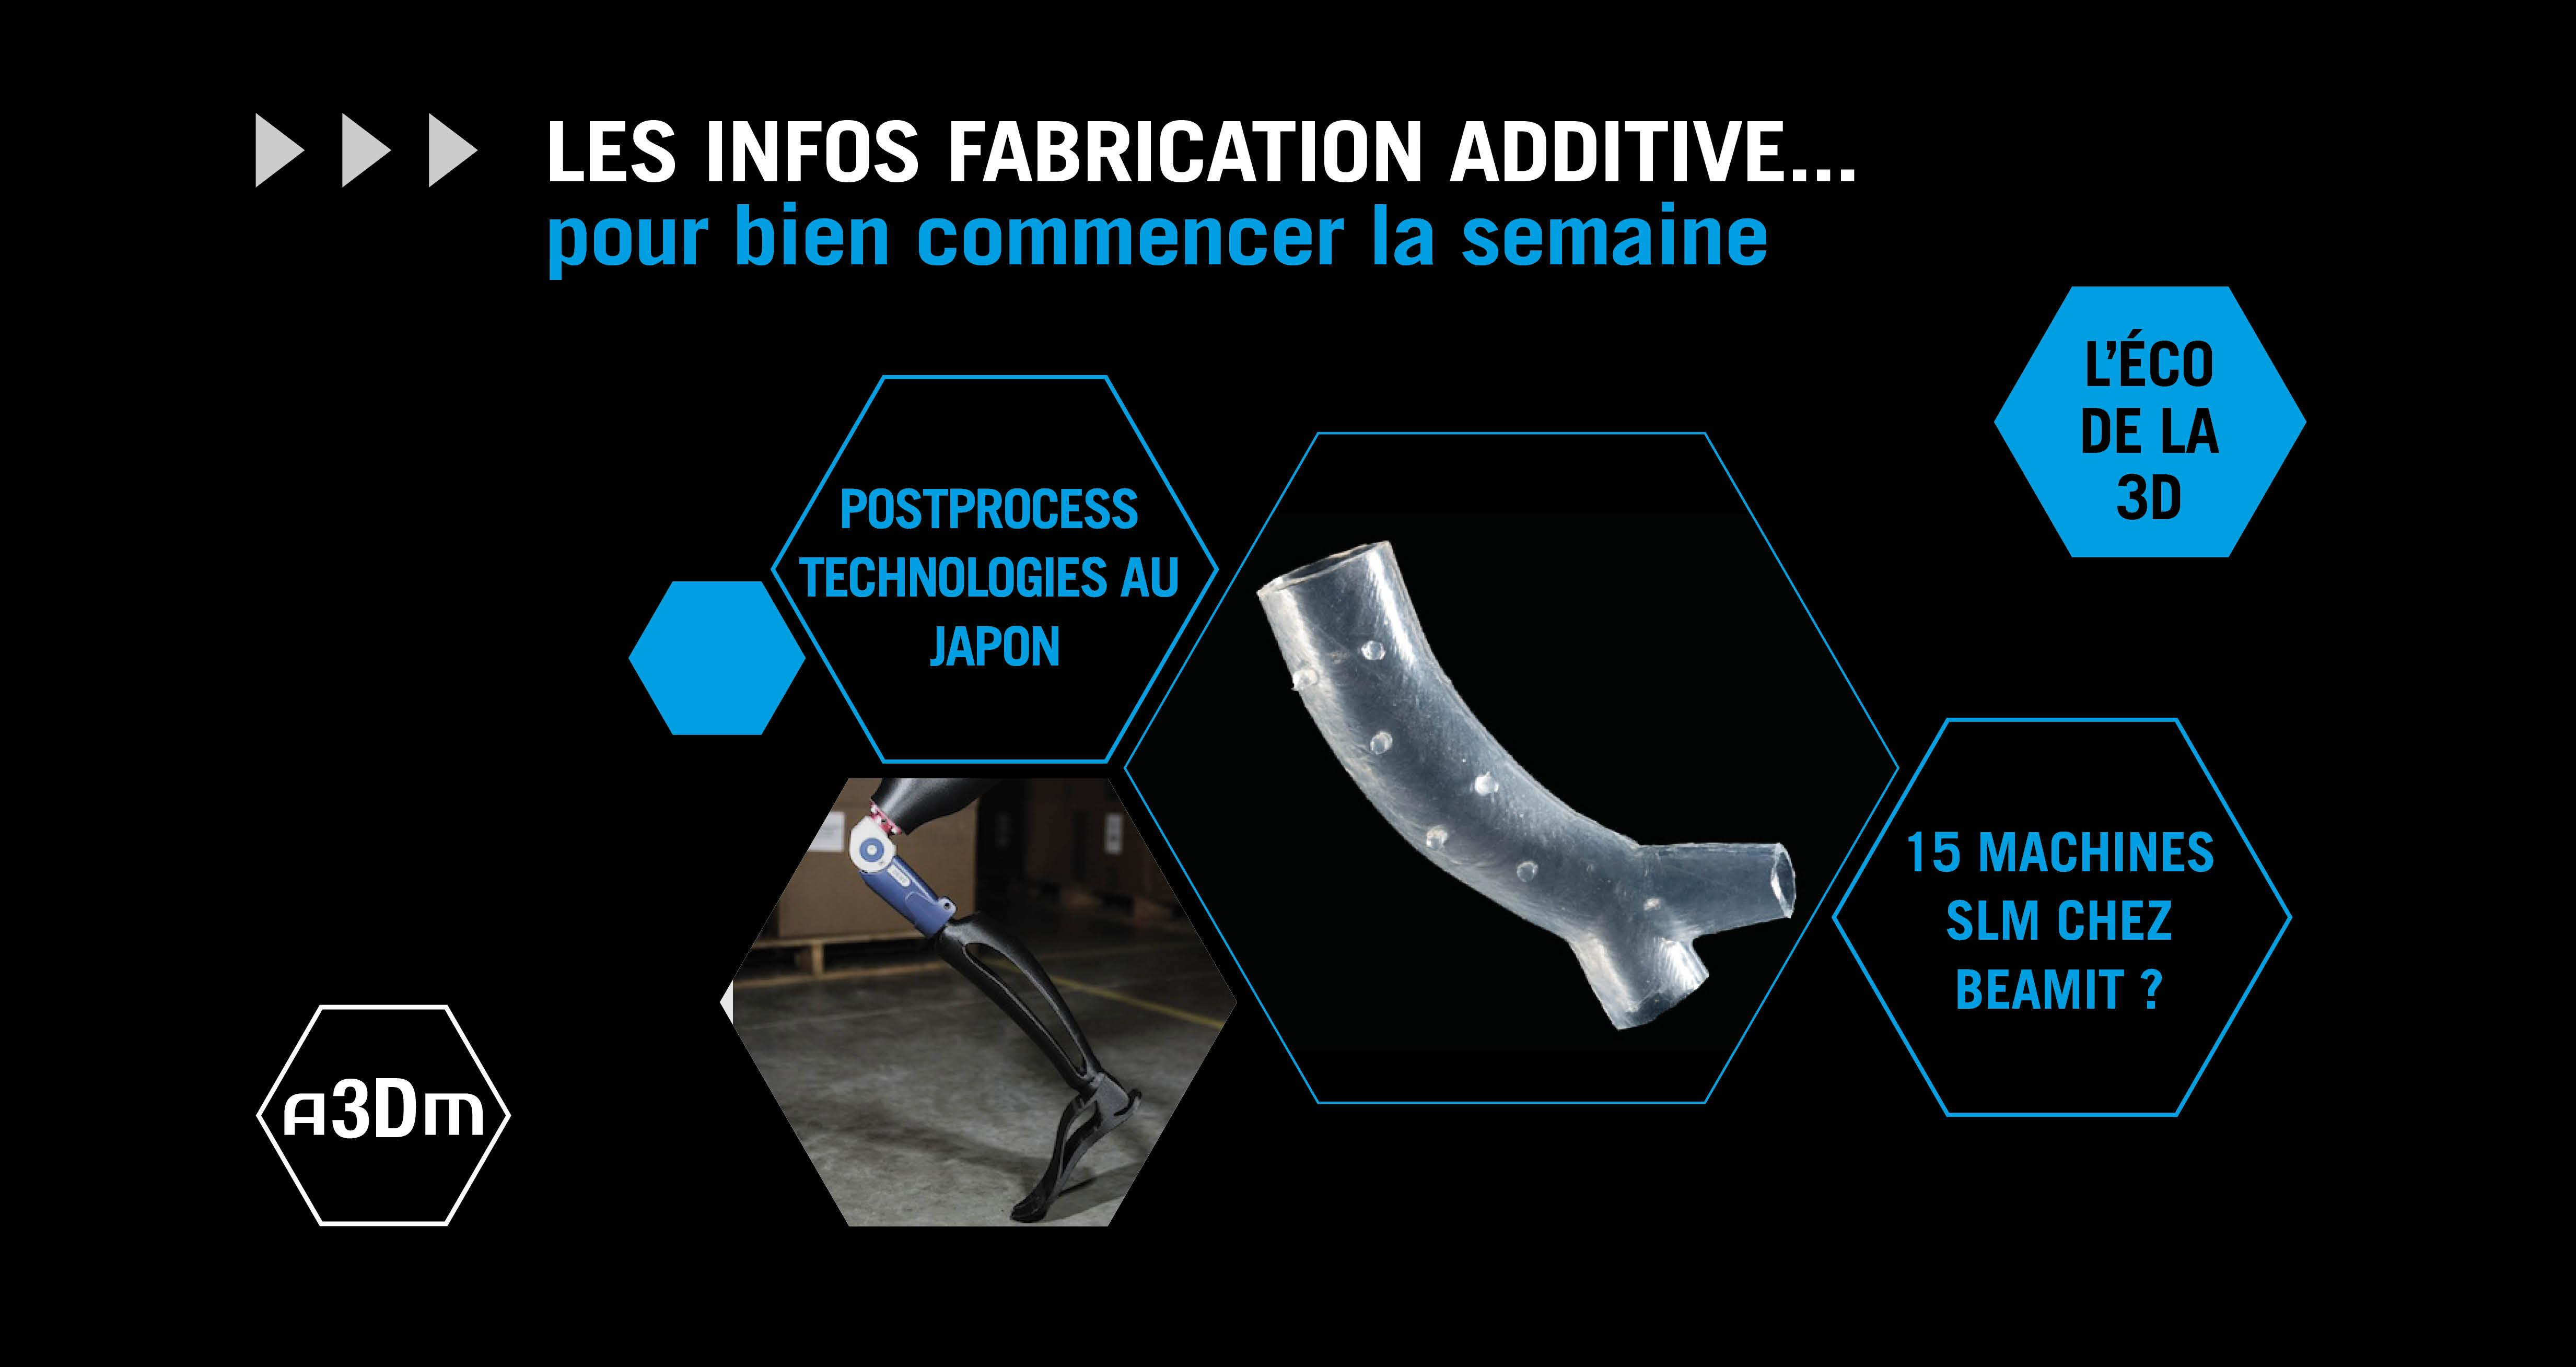 Infos fabrication additive semaine #31